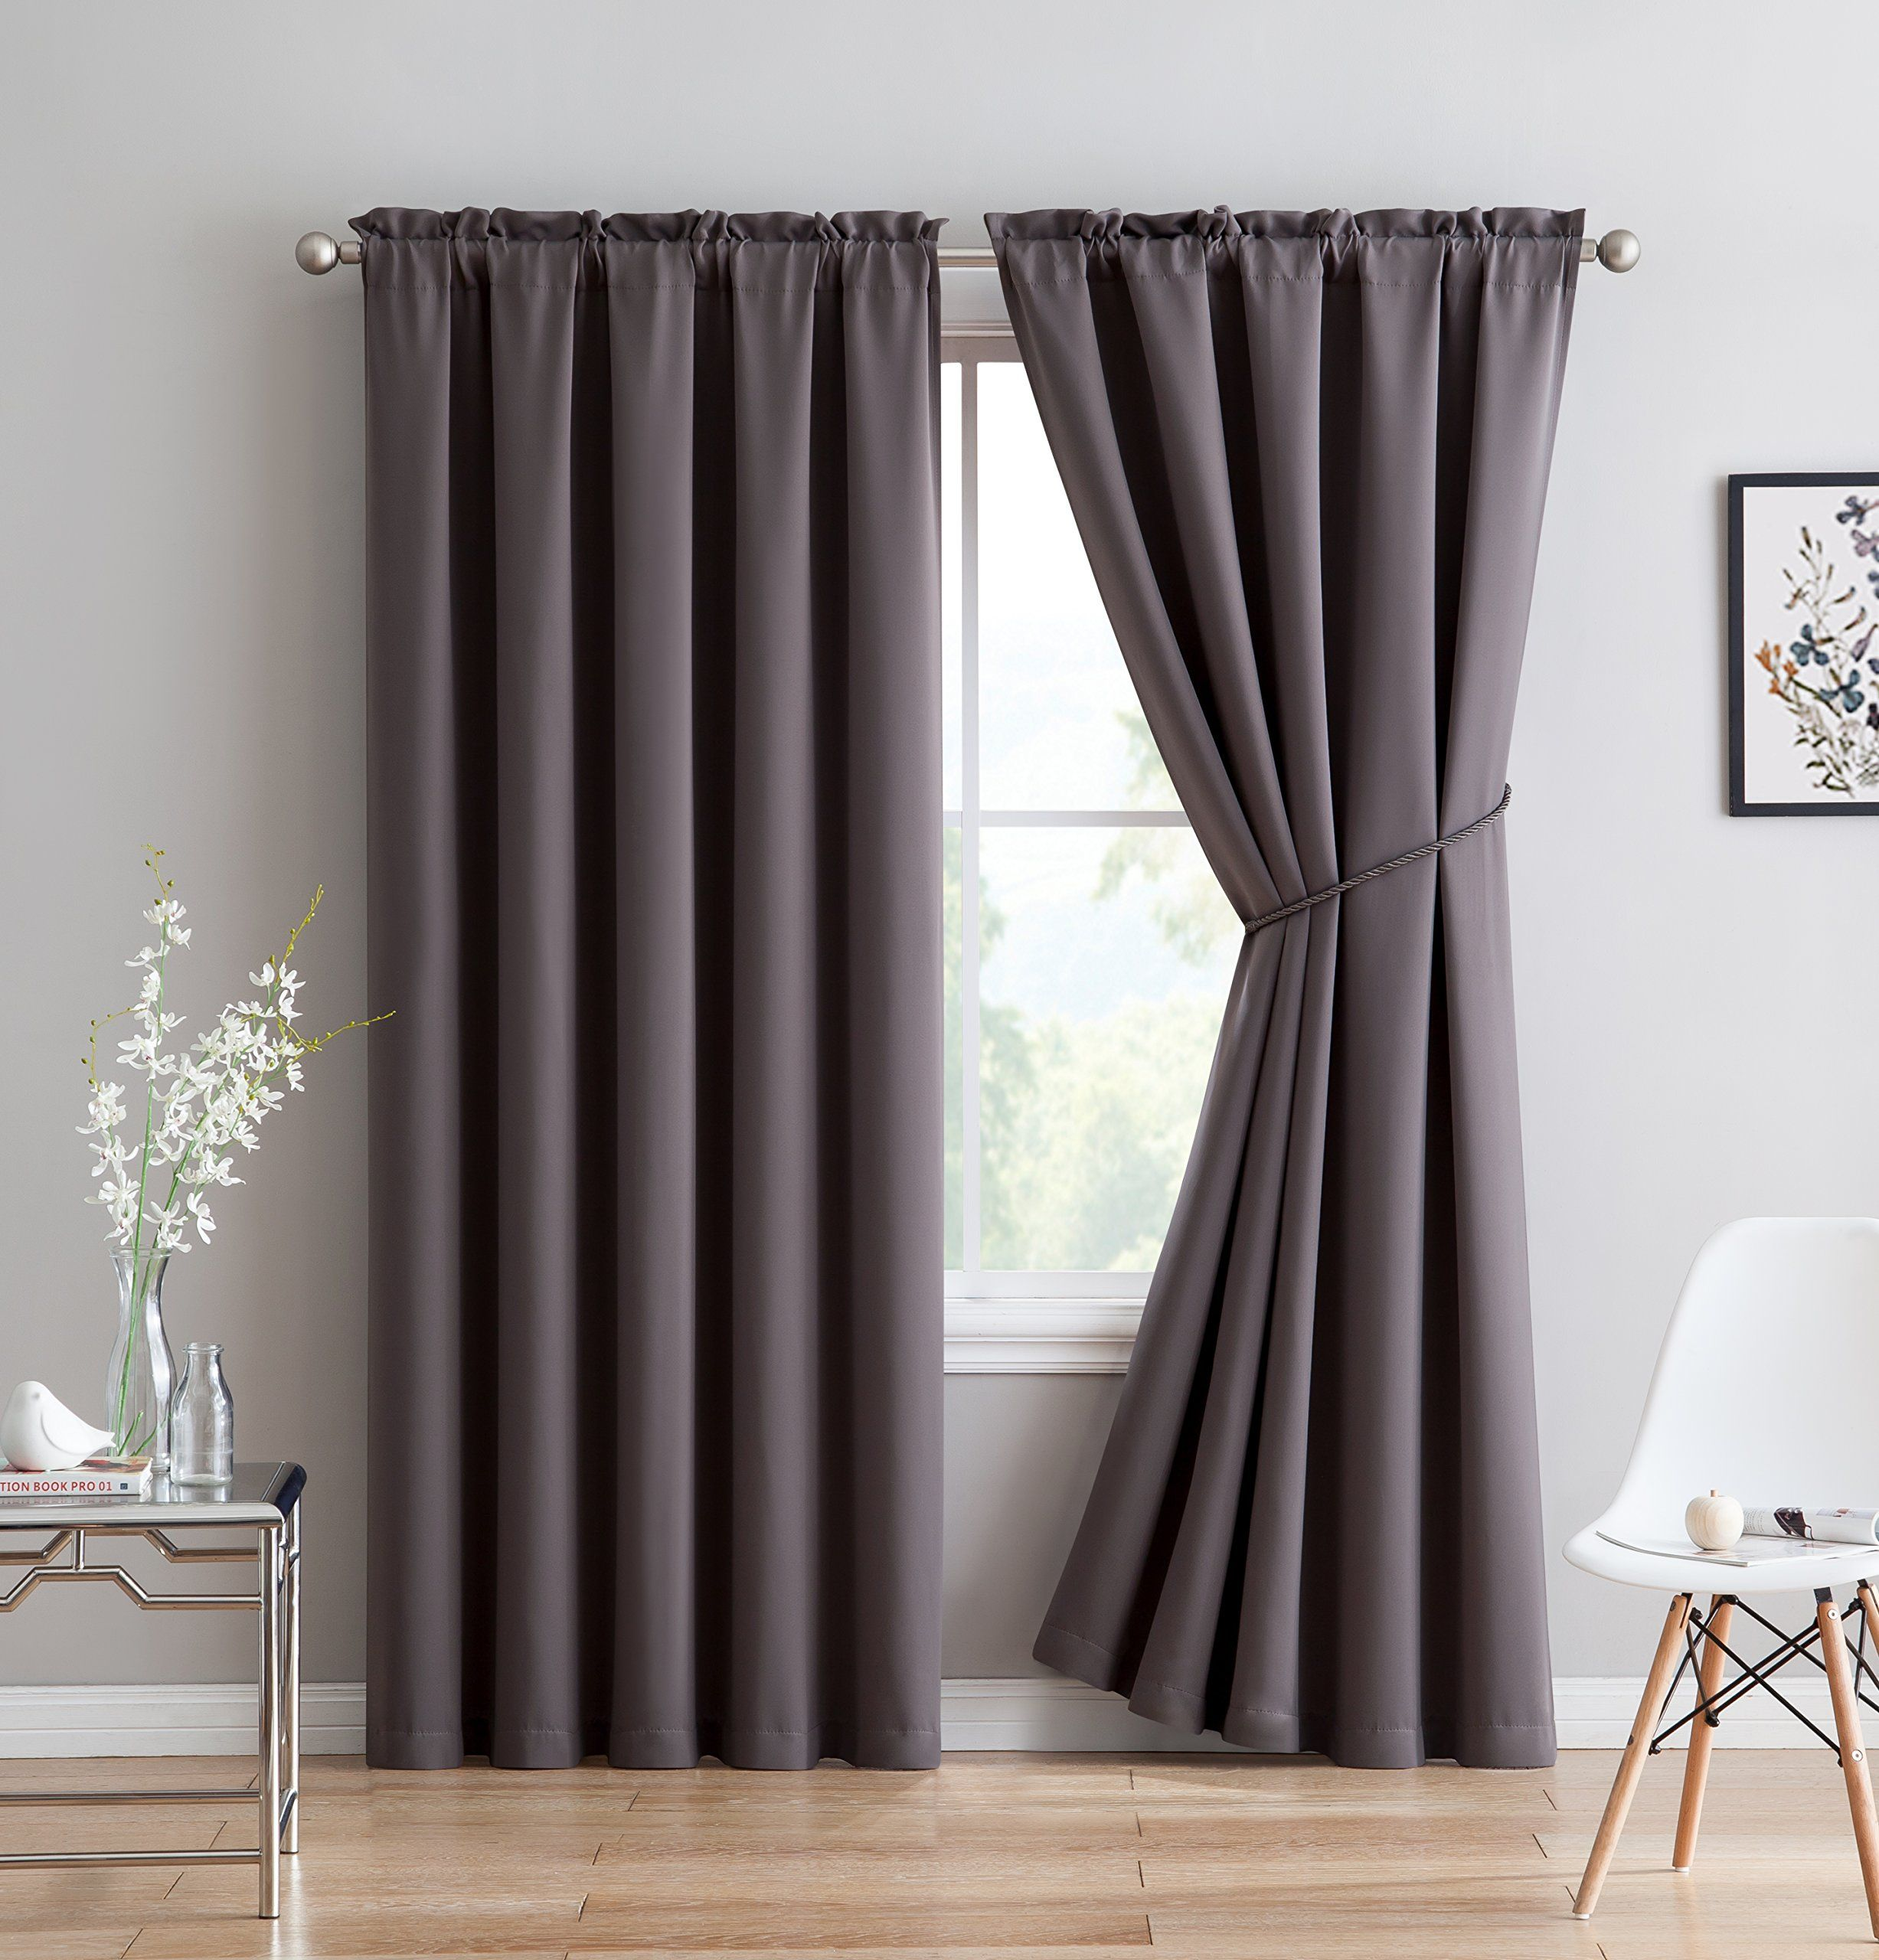 door curtains ideas curtain full short bedroom window size of for inch panel unique